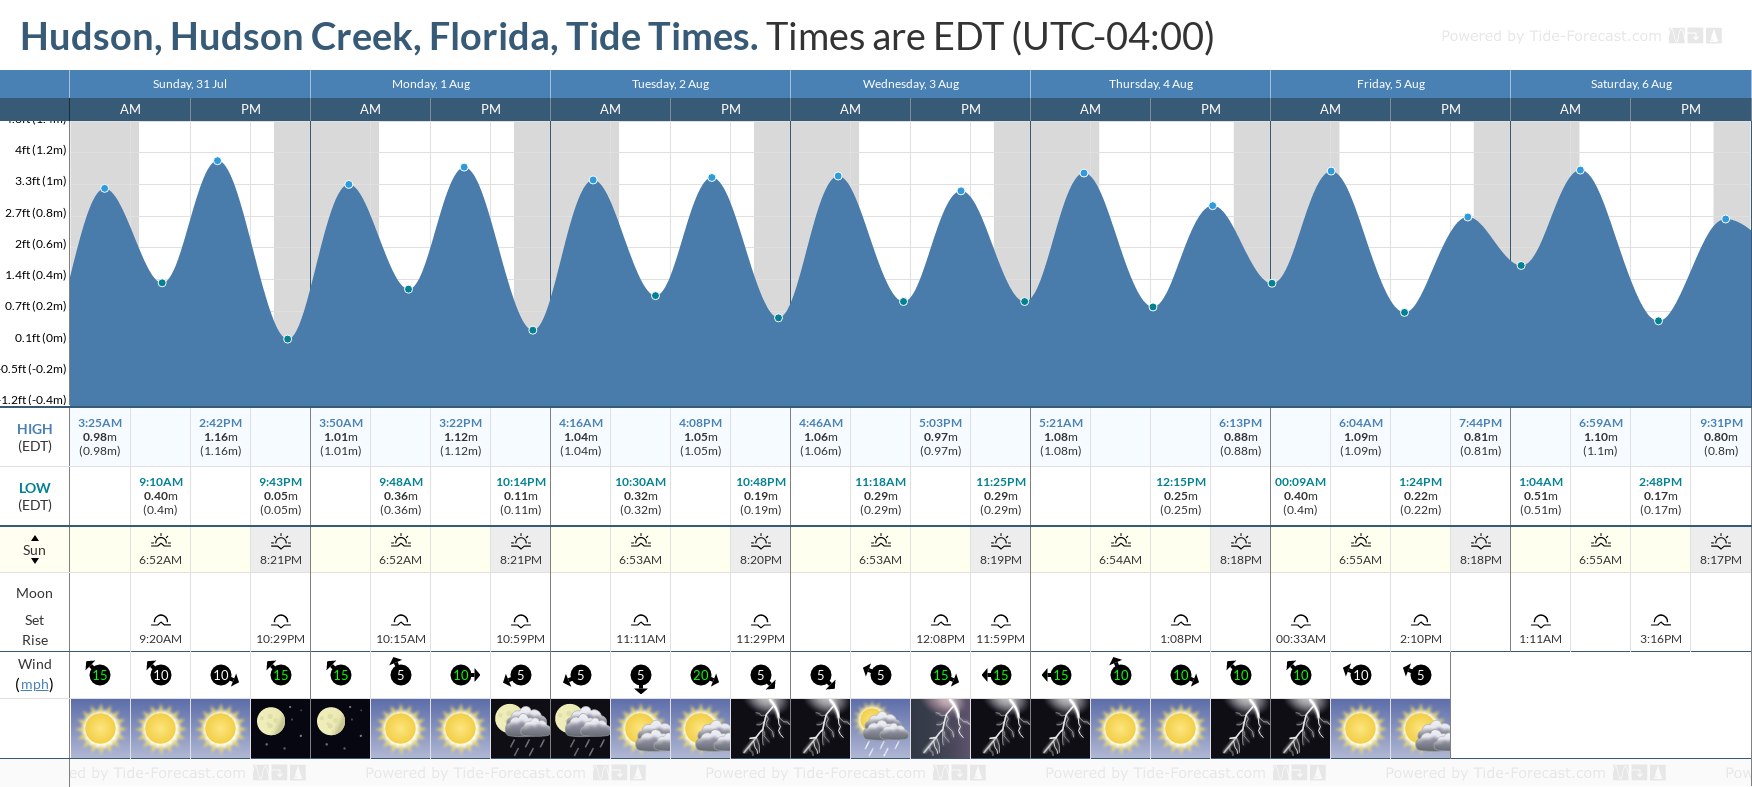 Hudson, Hudson Creek, Florida Tide Chart including high and low tide tide times for the next 7 days